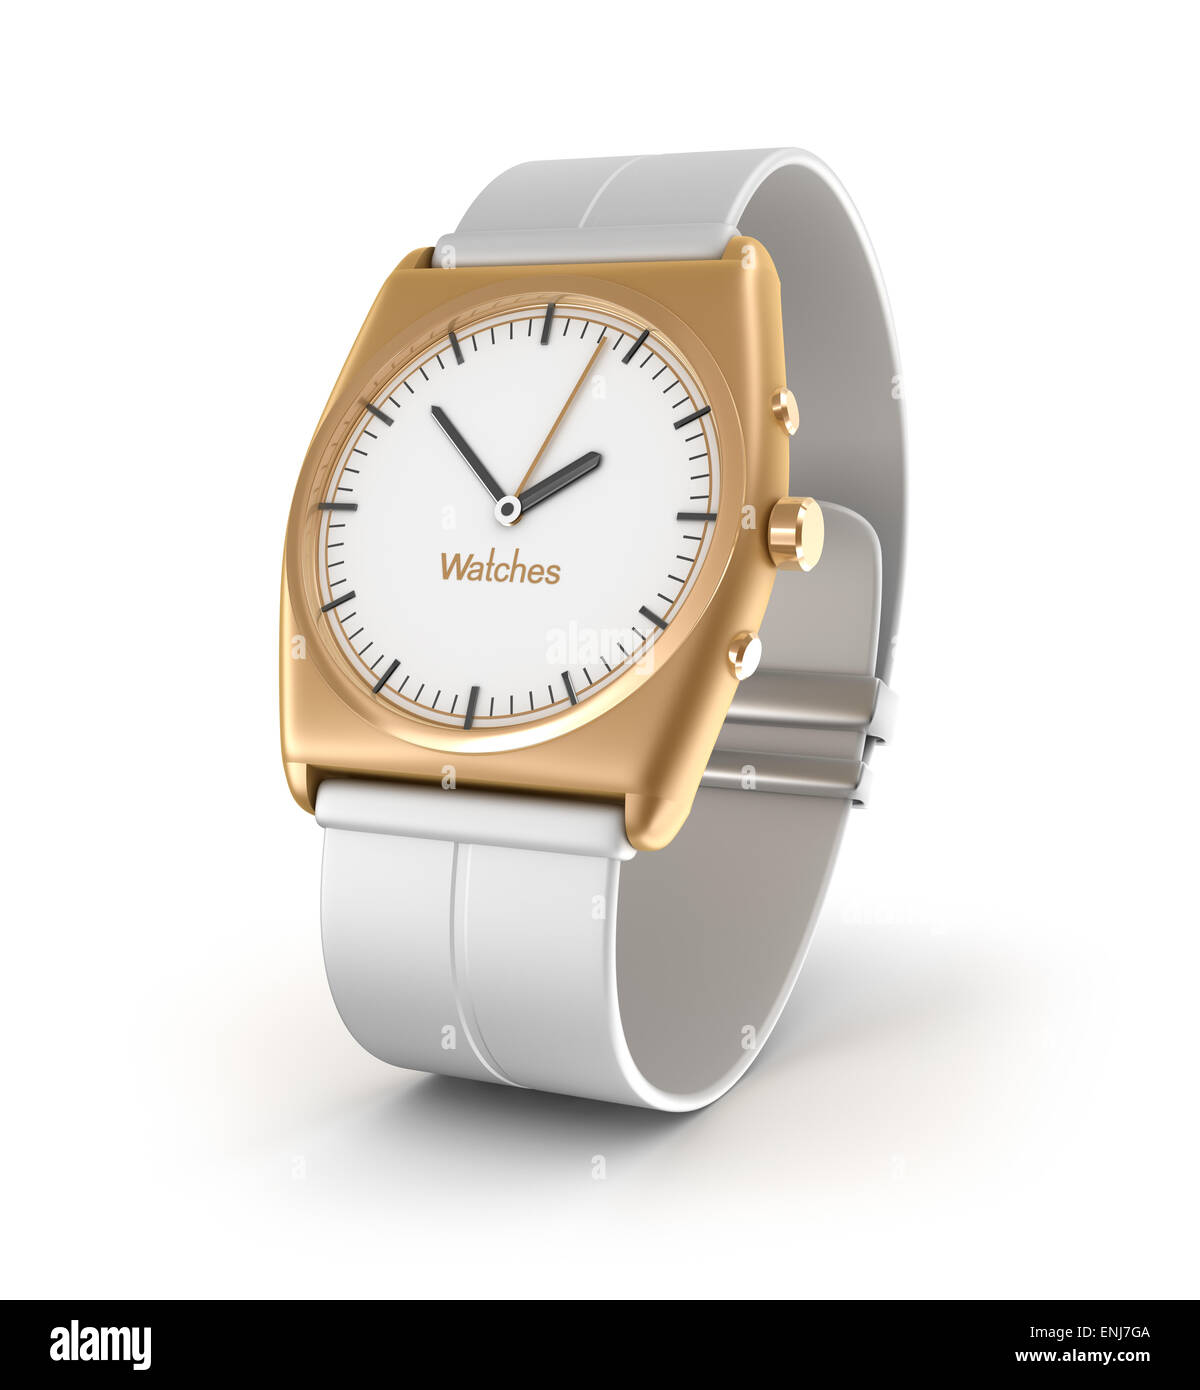 Luxury wrist watch in gold color isolated on white background. My own design - Stock Image